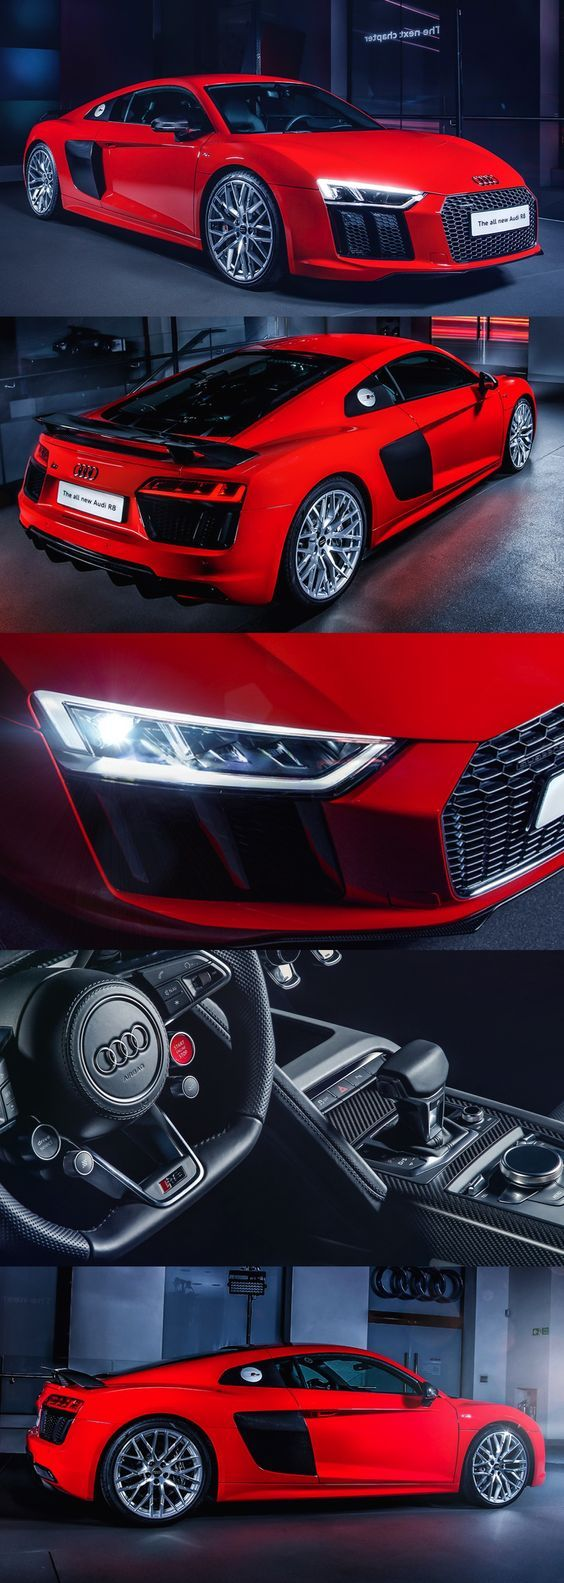 Audi R8 V10 plus - 0-62 mph in 3.2 seconds, 0-124mph in 9.9 seconds, top speed 205mph, combined MPG 23.9 , TuningCult.com